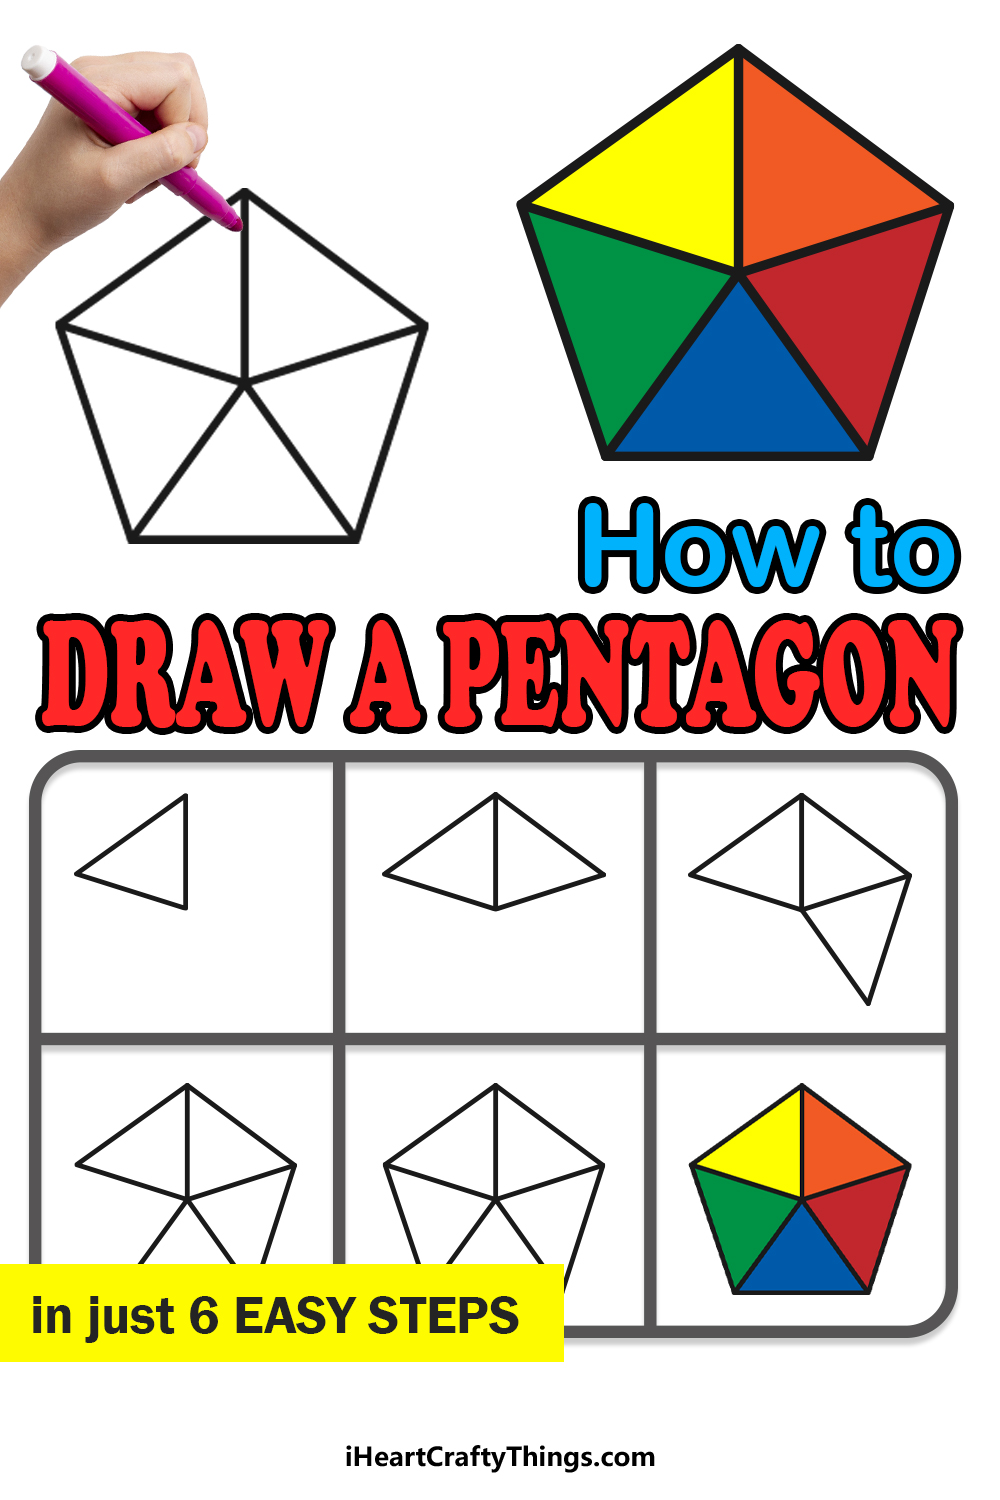 how to draw a pentagon in 6 easy steps